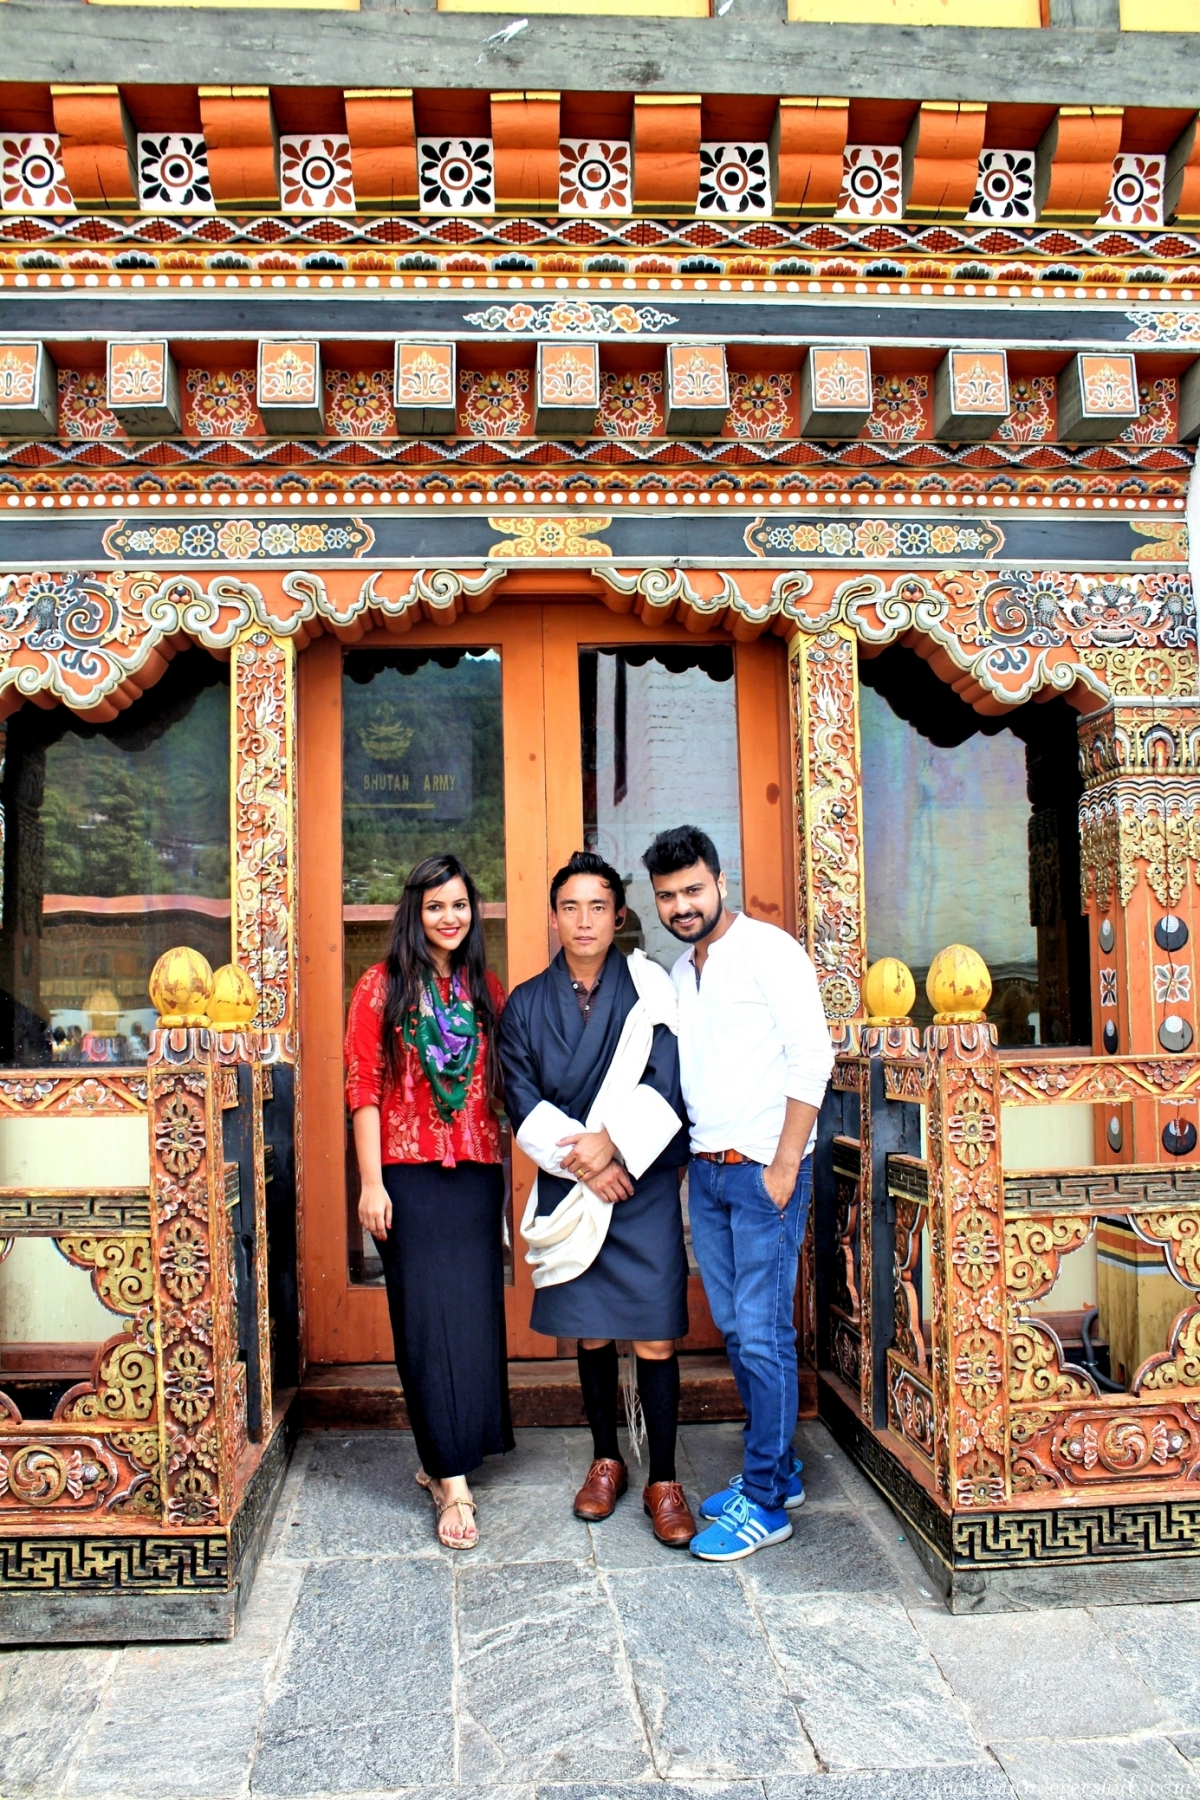 Travel to Bhutan for the Thimphu Festival